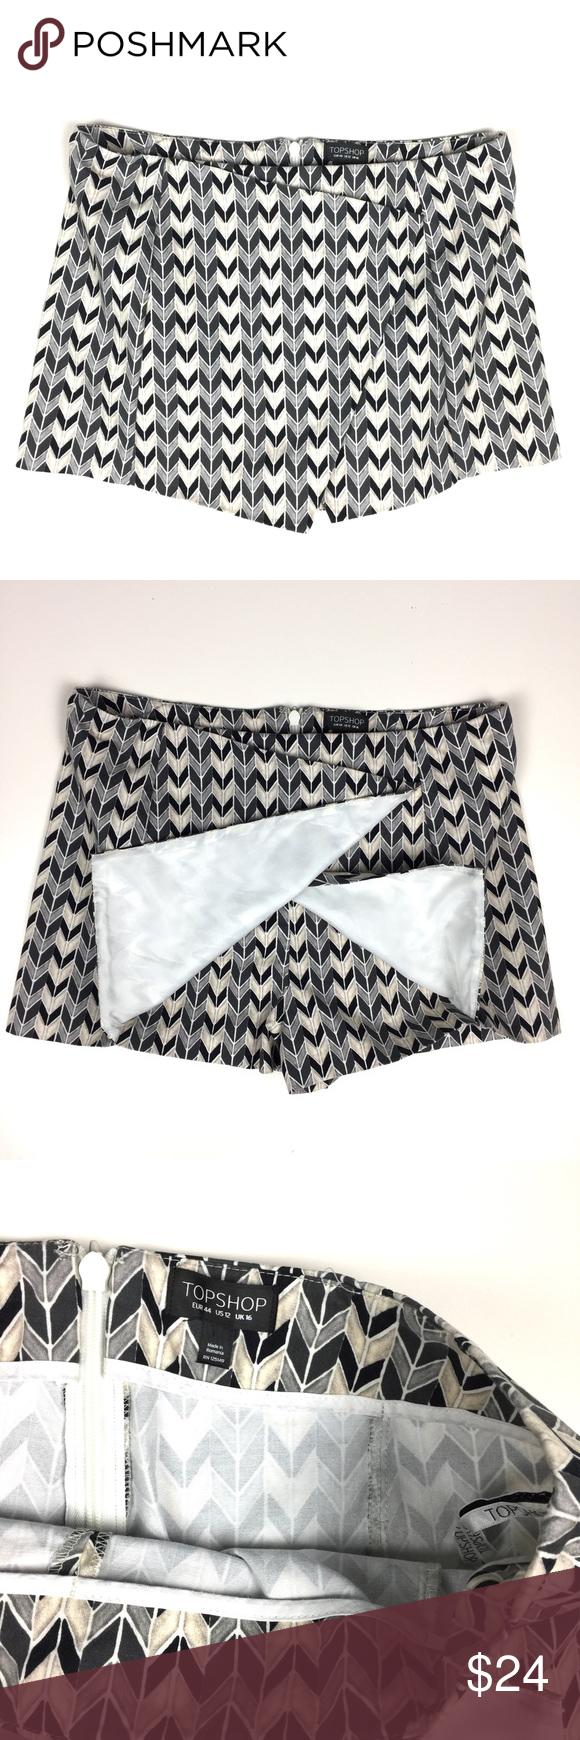 "Topshop Chevron Stripe Skort // 12 Awesome Topshop skirt/shorts skort. All over chevron stripe print. Back zipper. Very good condition. 98% cotton, 2% elastane. Size 12. 14"" long. 18"" waist flat. Topshop Shorts Skorts"